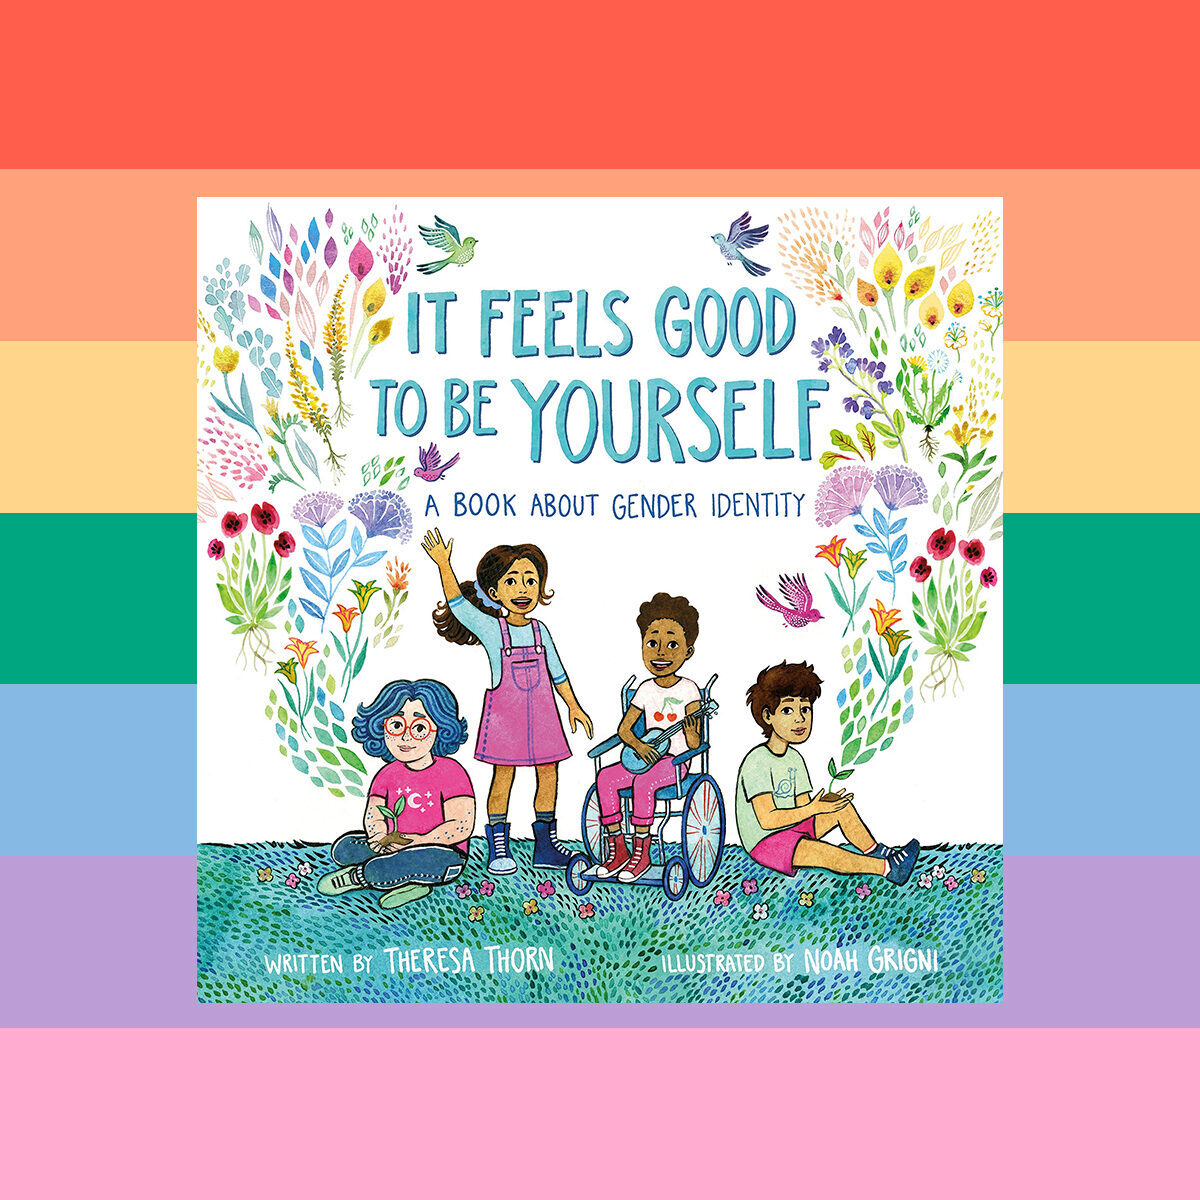 Cover of children's book It Feels Good to be Yourself